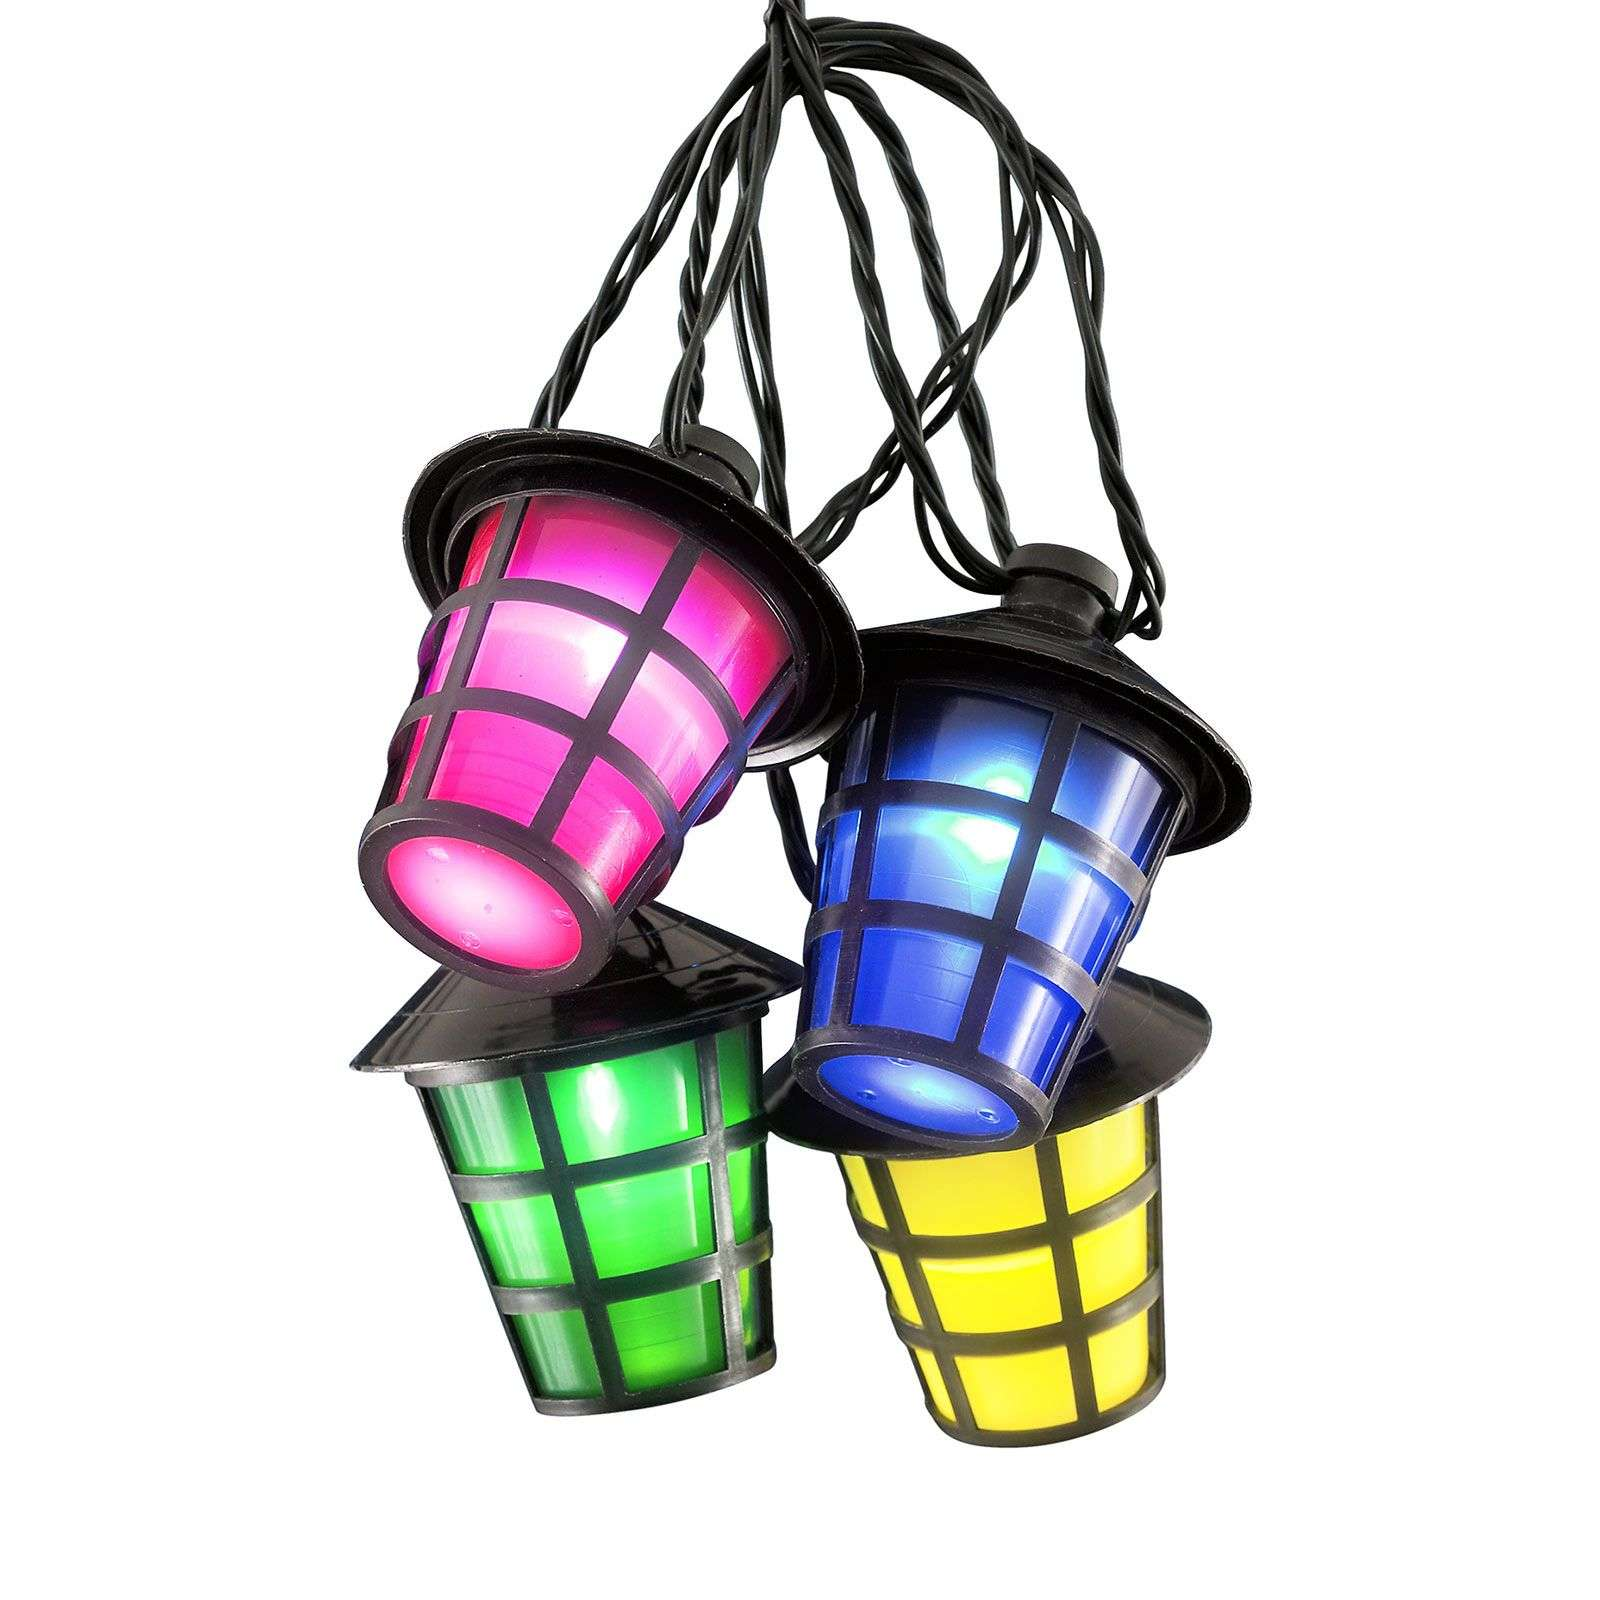 Catena luminosa Lampion, 40 lanterne LED colorate